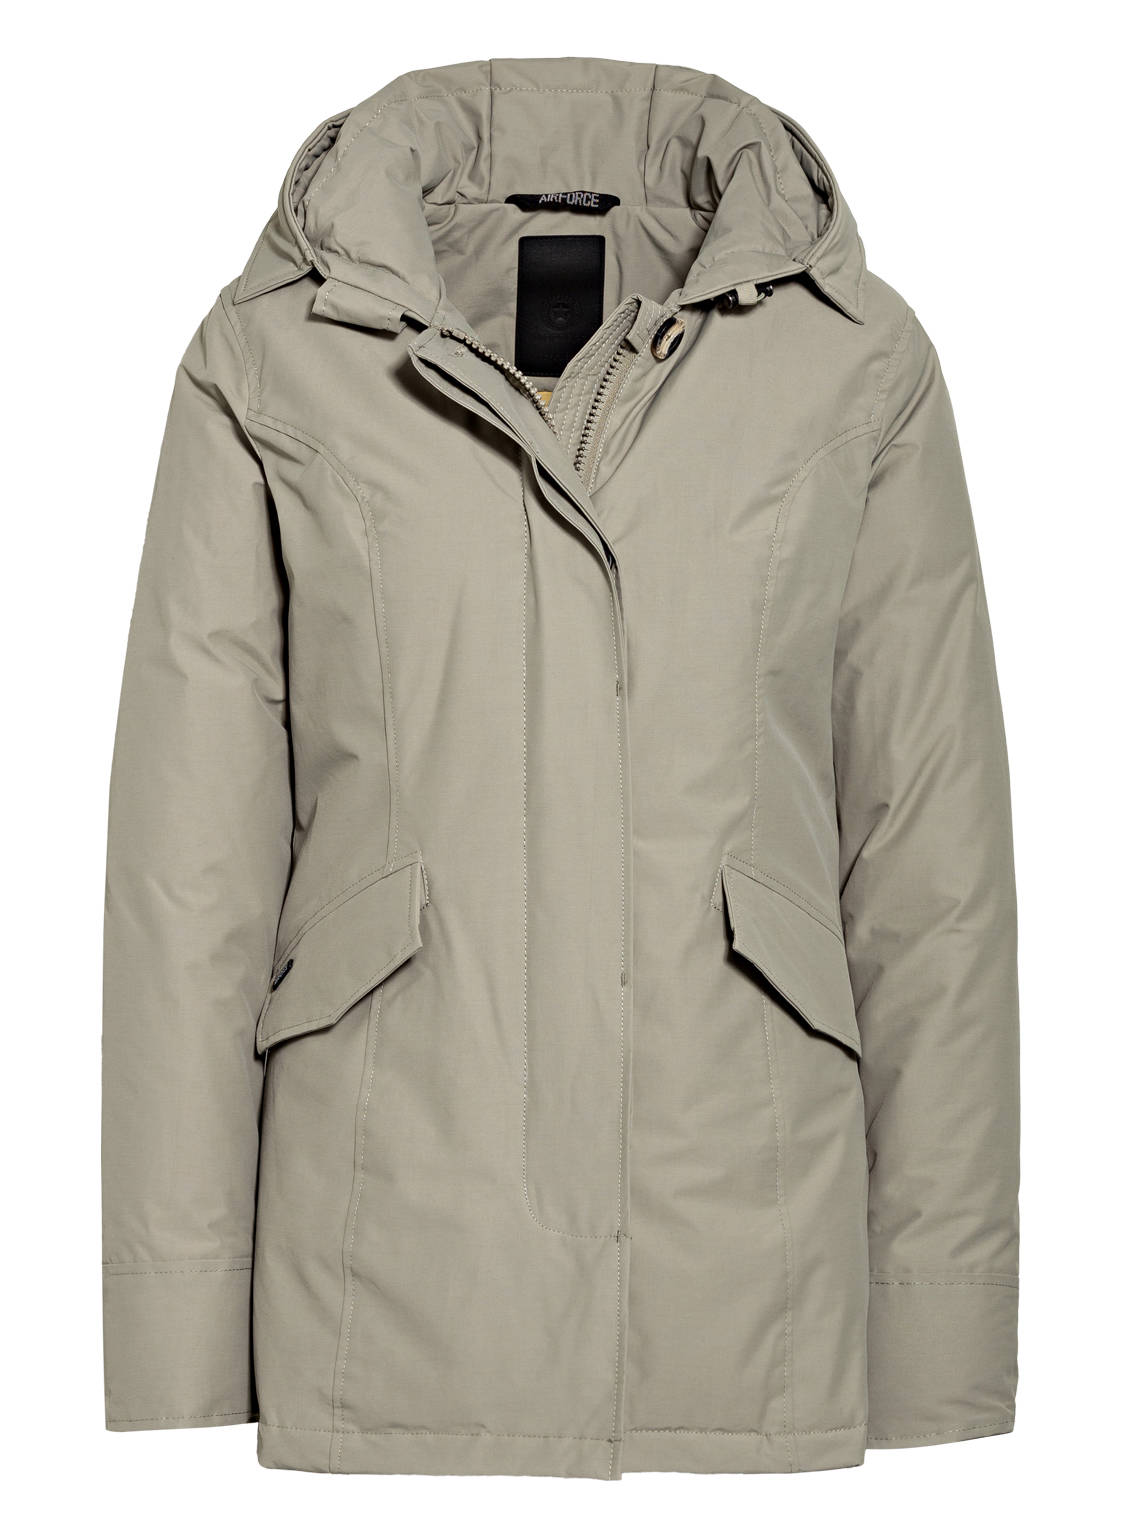 Image of Airforce Parka beige